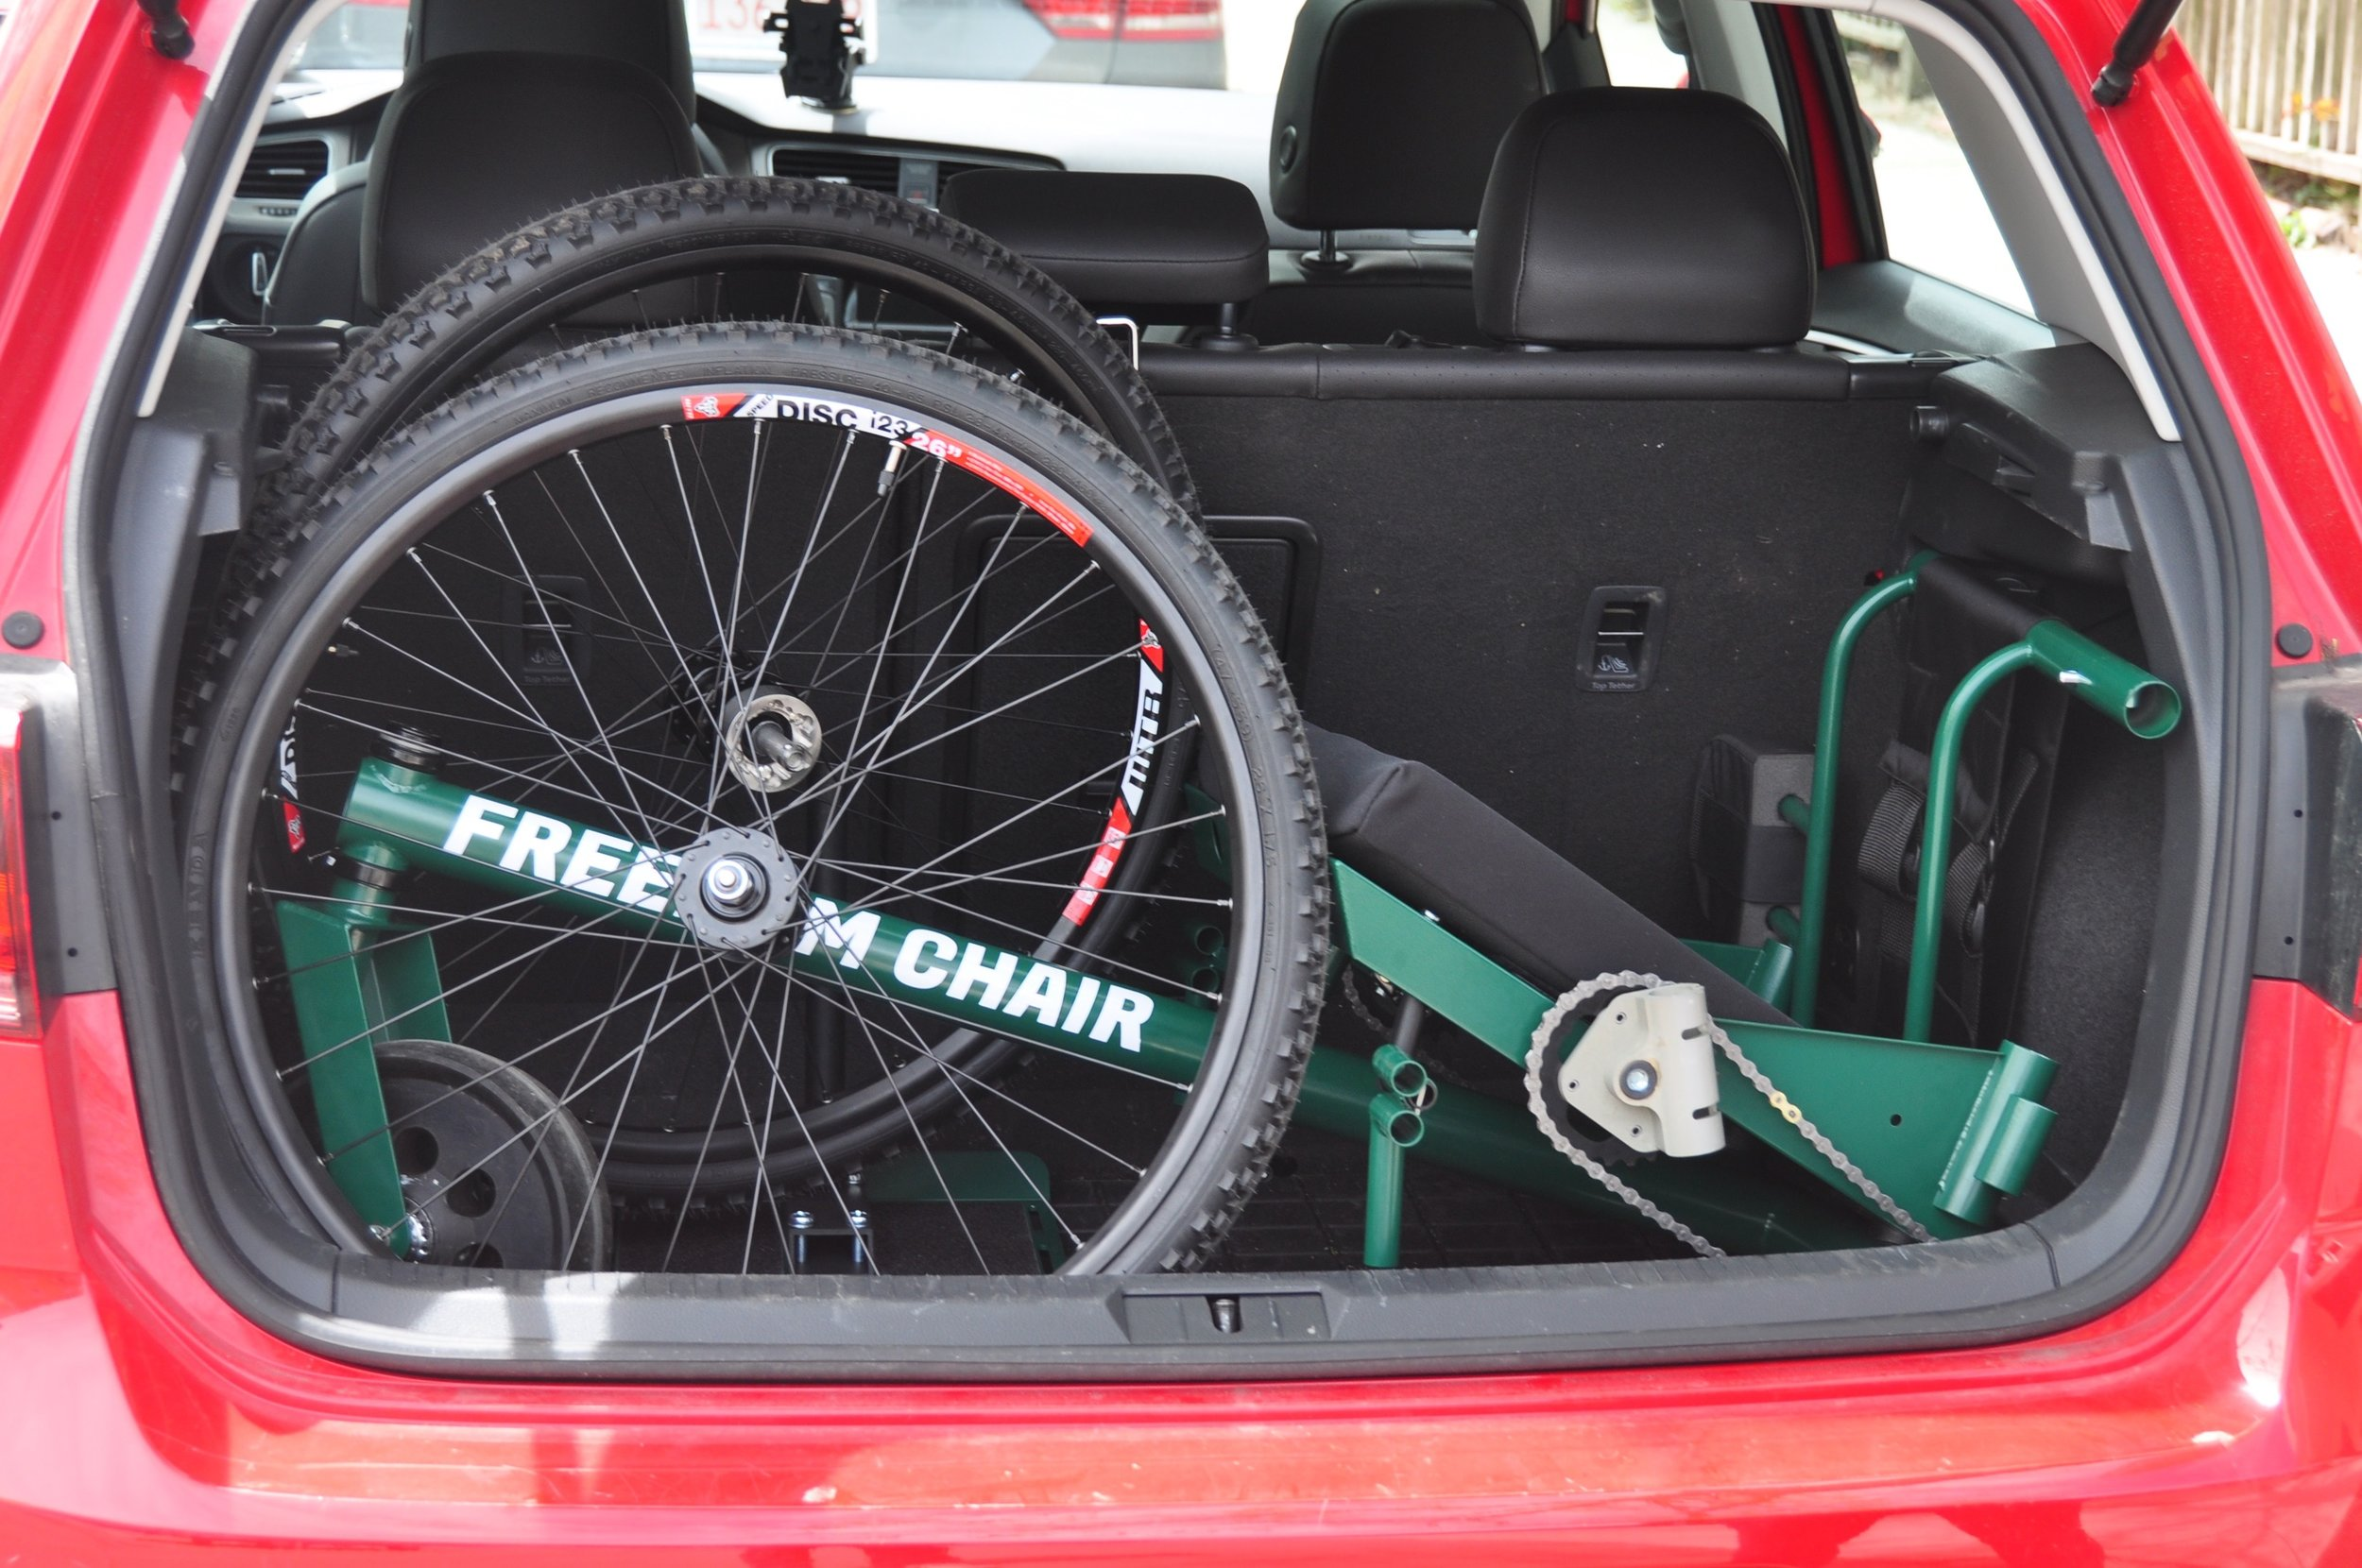 Transporting the disassembled GRIT Freedom Chair in the trunk of a hatchback.